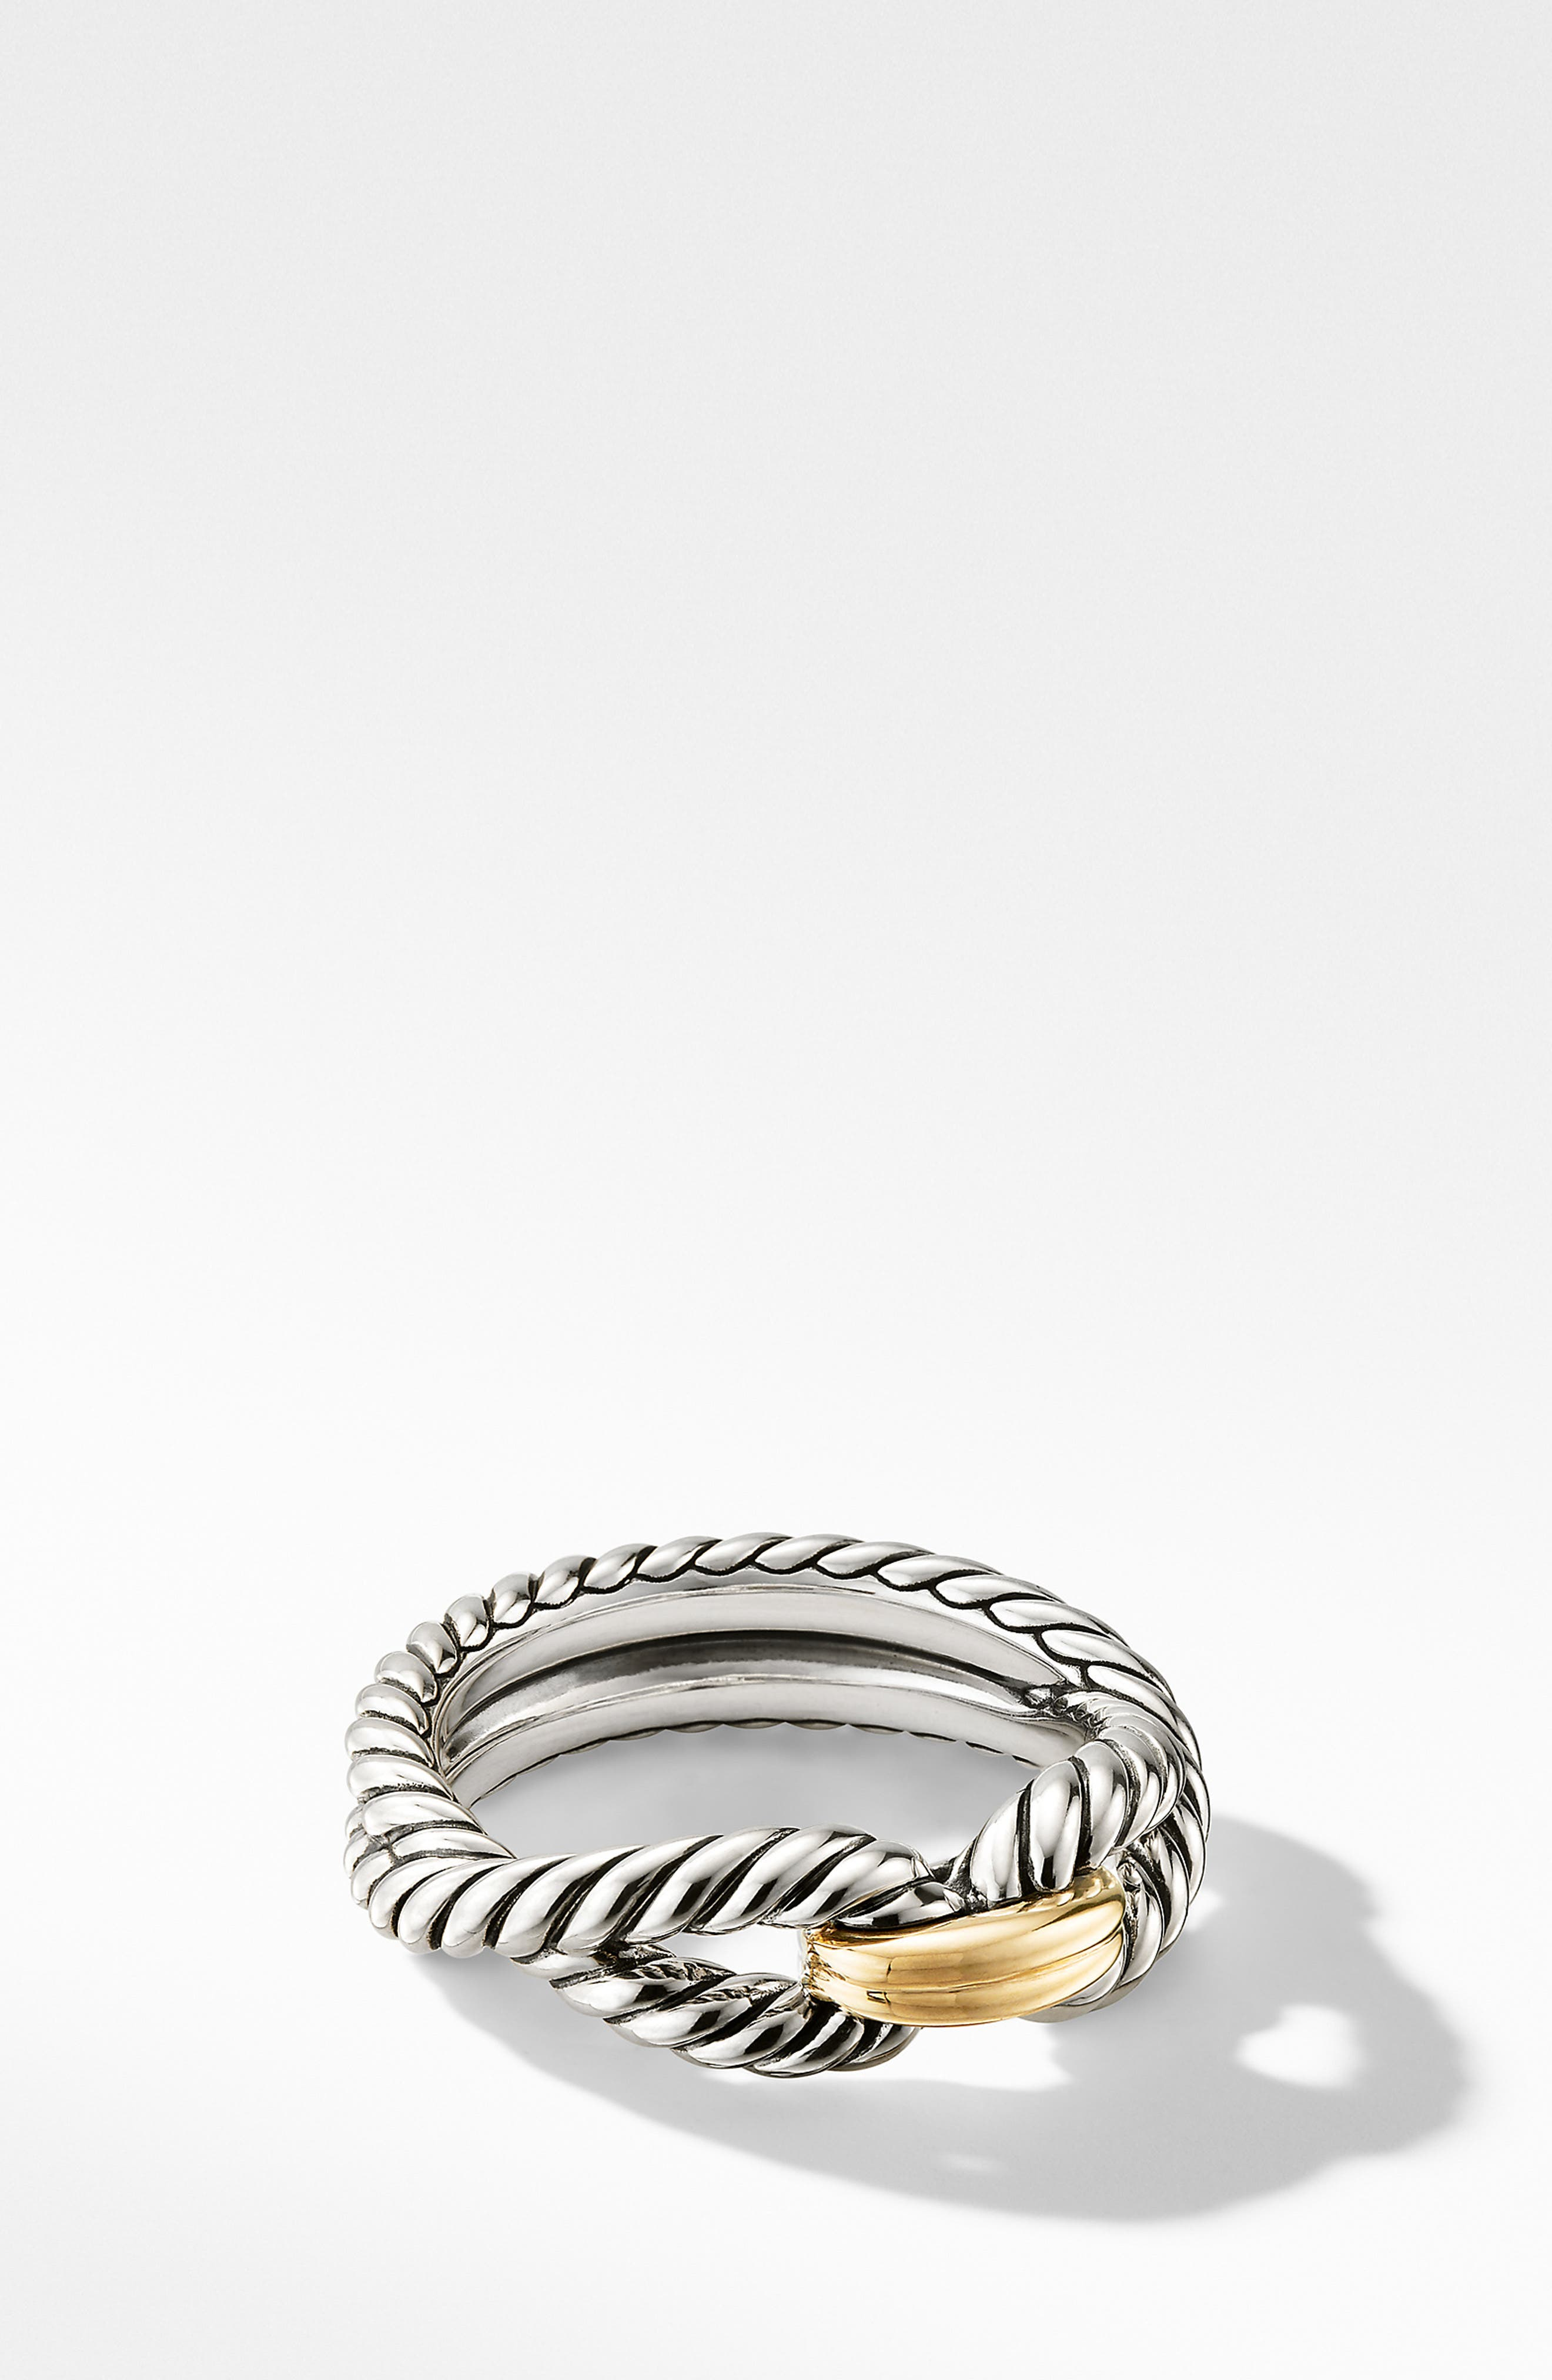 Cable Loop Ring with 18K Gold,                         Main,                         color, YELLOW GOLD/ STERLING SILVER